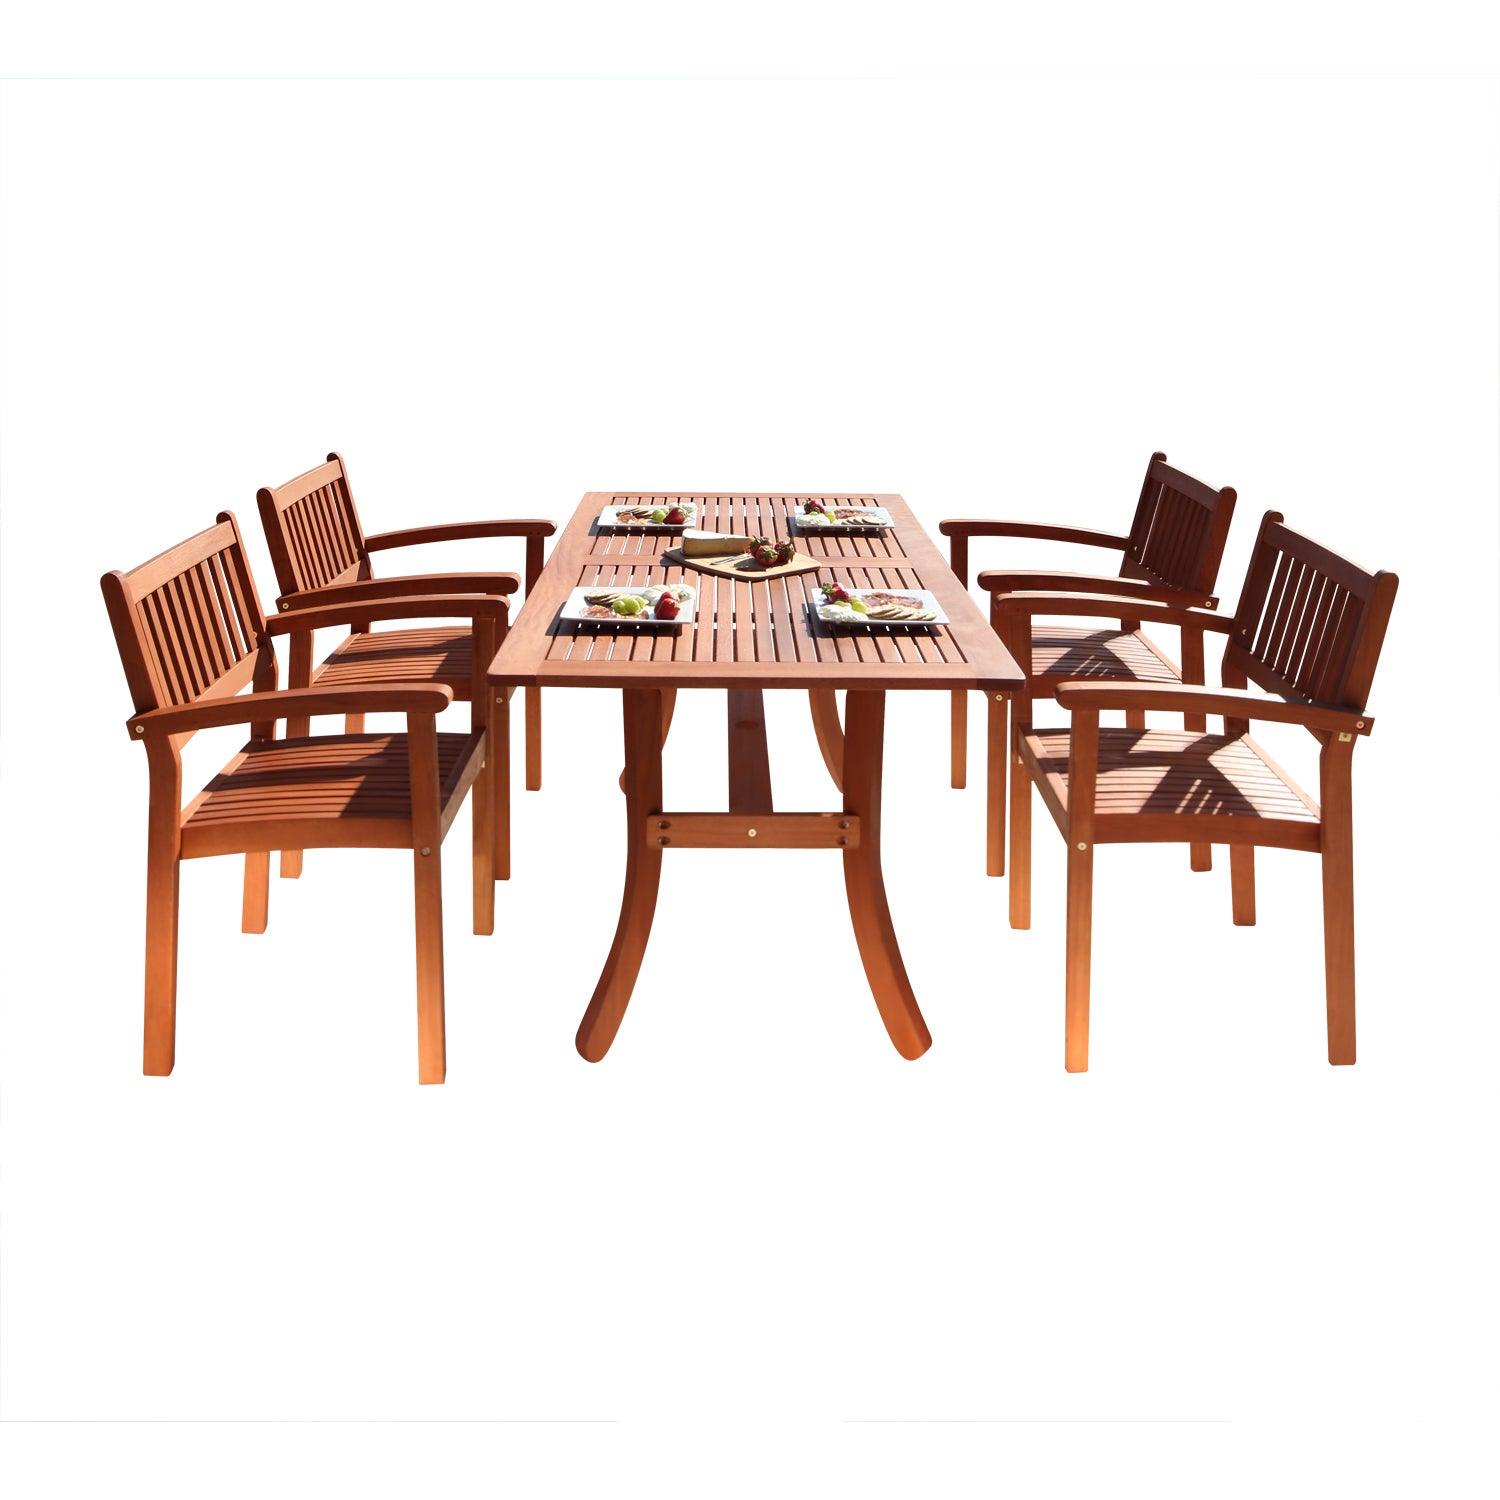 Shop 5 piece eucalyptus wood outdoor dining set with curved table free shipping on orders over 45 overstock com 10061247